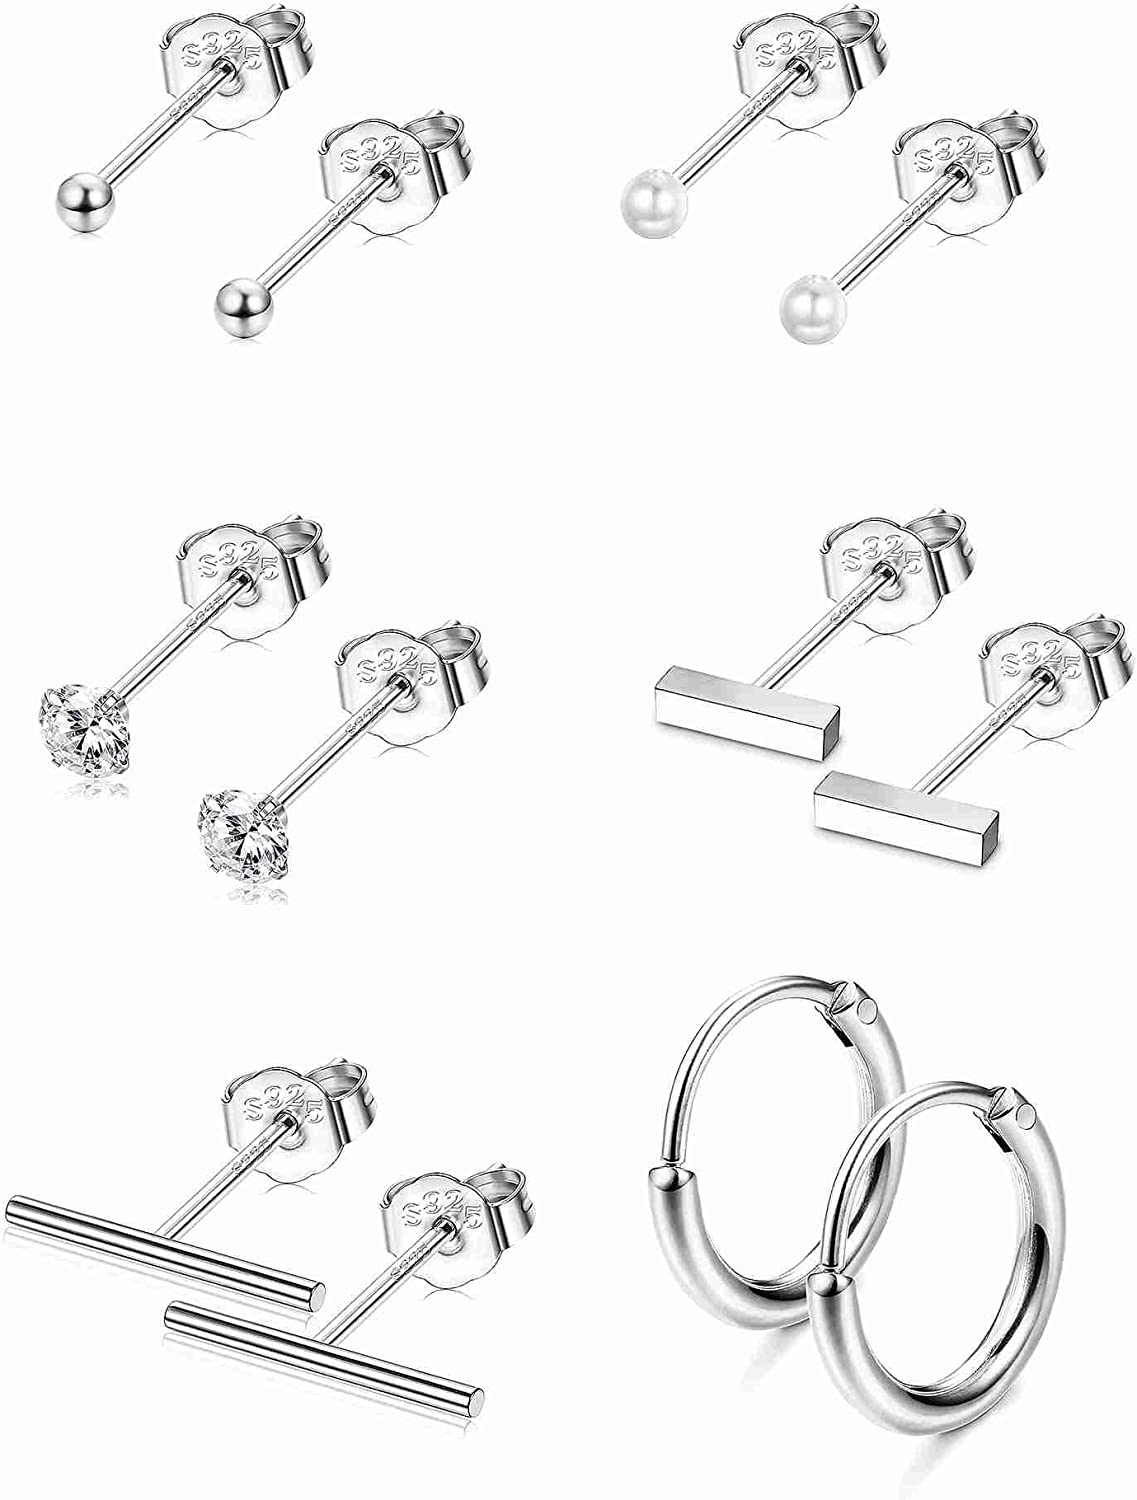 Sllaiss 925 Sterling Silver Assorted Multiple Tiny Stud Earrings for Women Men Round Ball CZ Stud Earrings Bar Pearl Small Hoop Earrings Set Hypoallergenic Piercing 6 Pairs